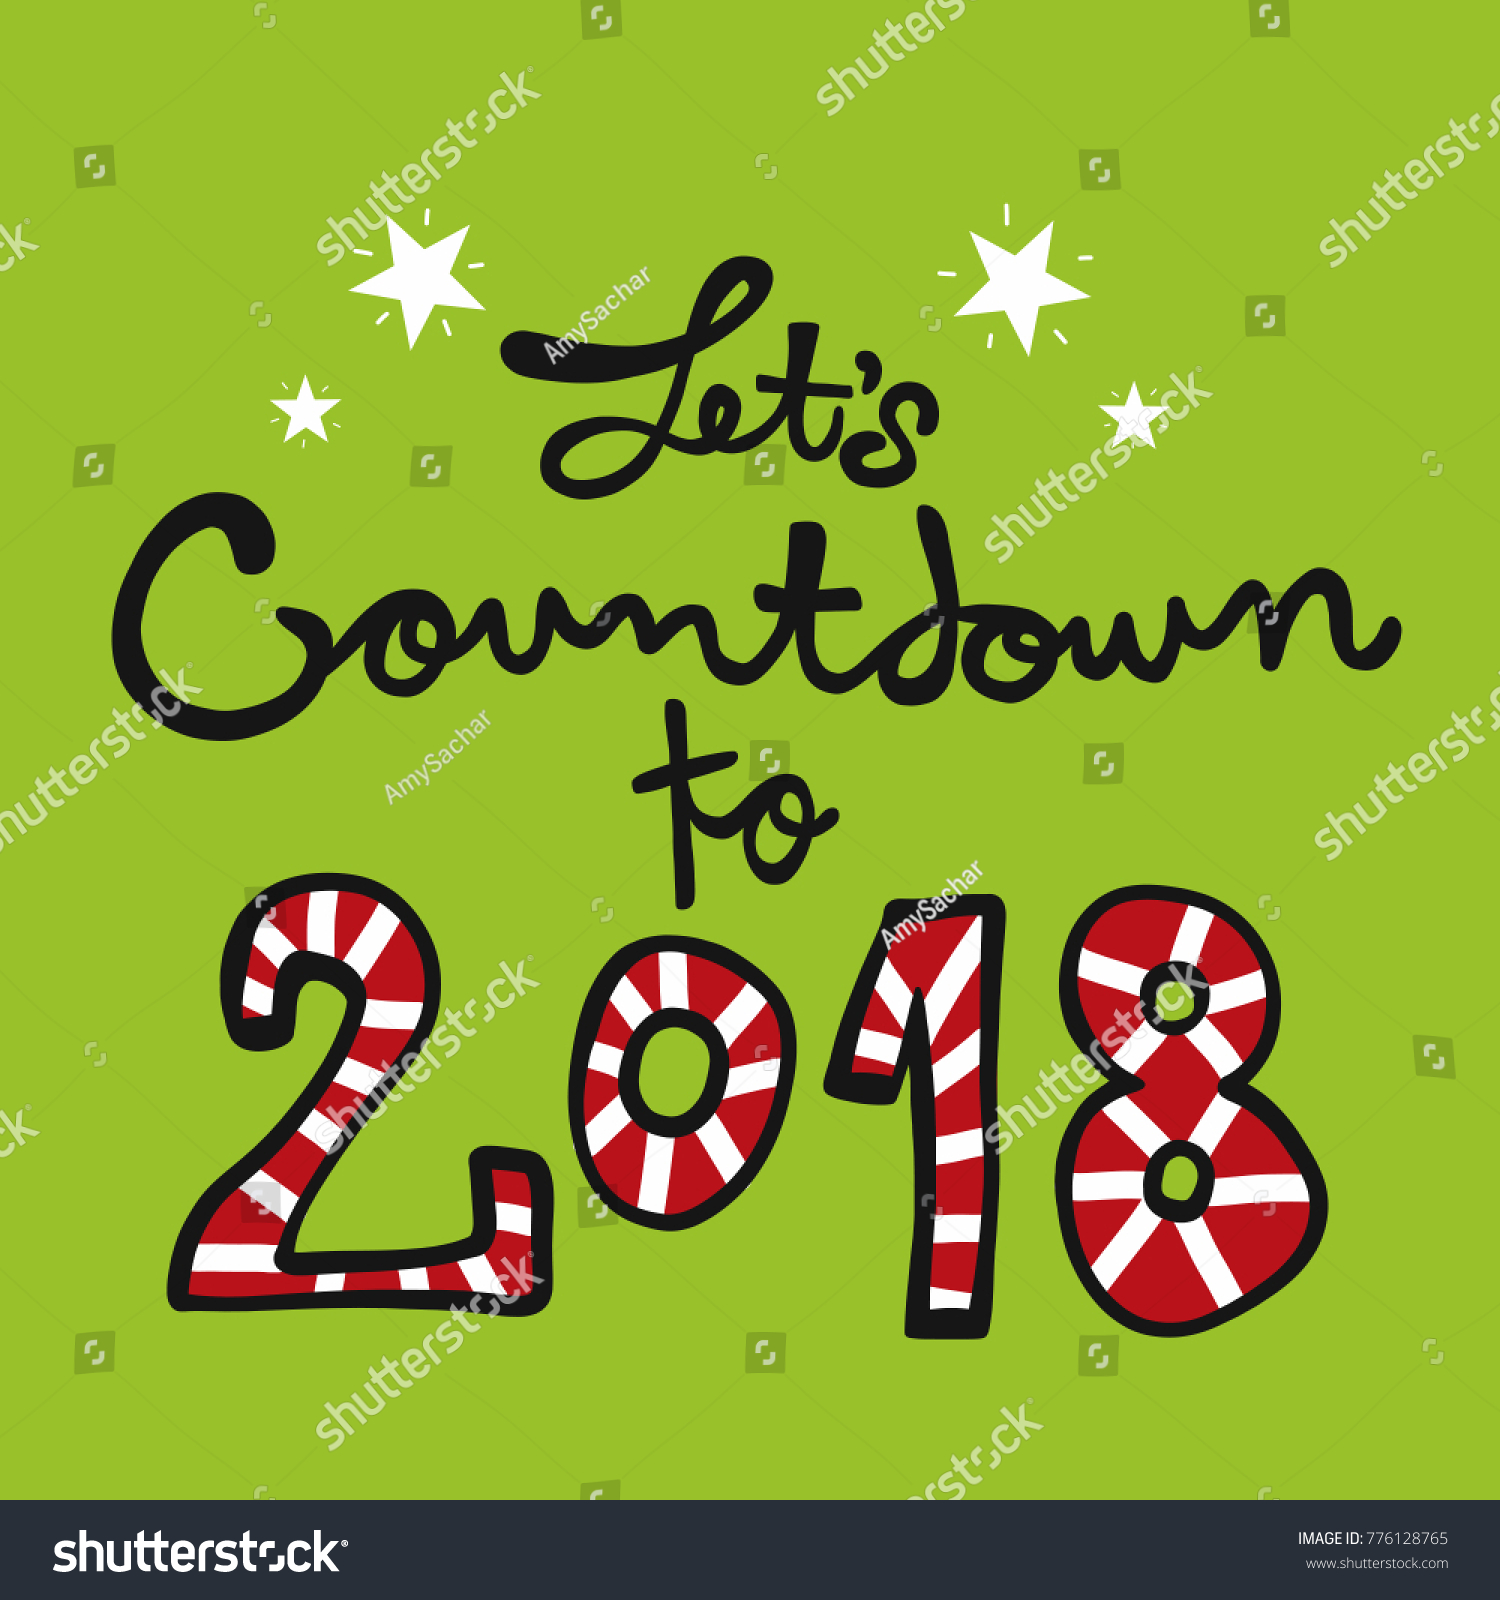 lets countdown to 2018 word lettering illustration